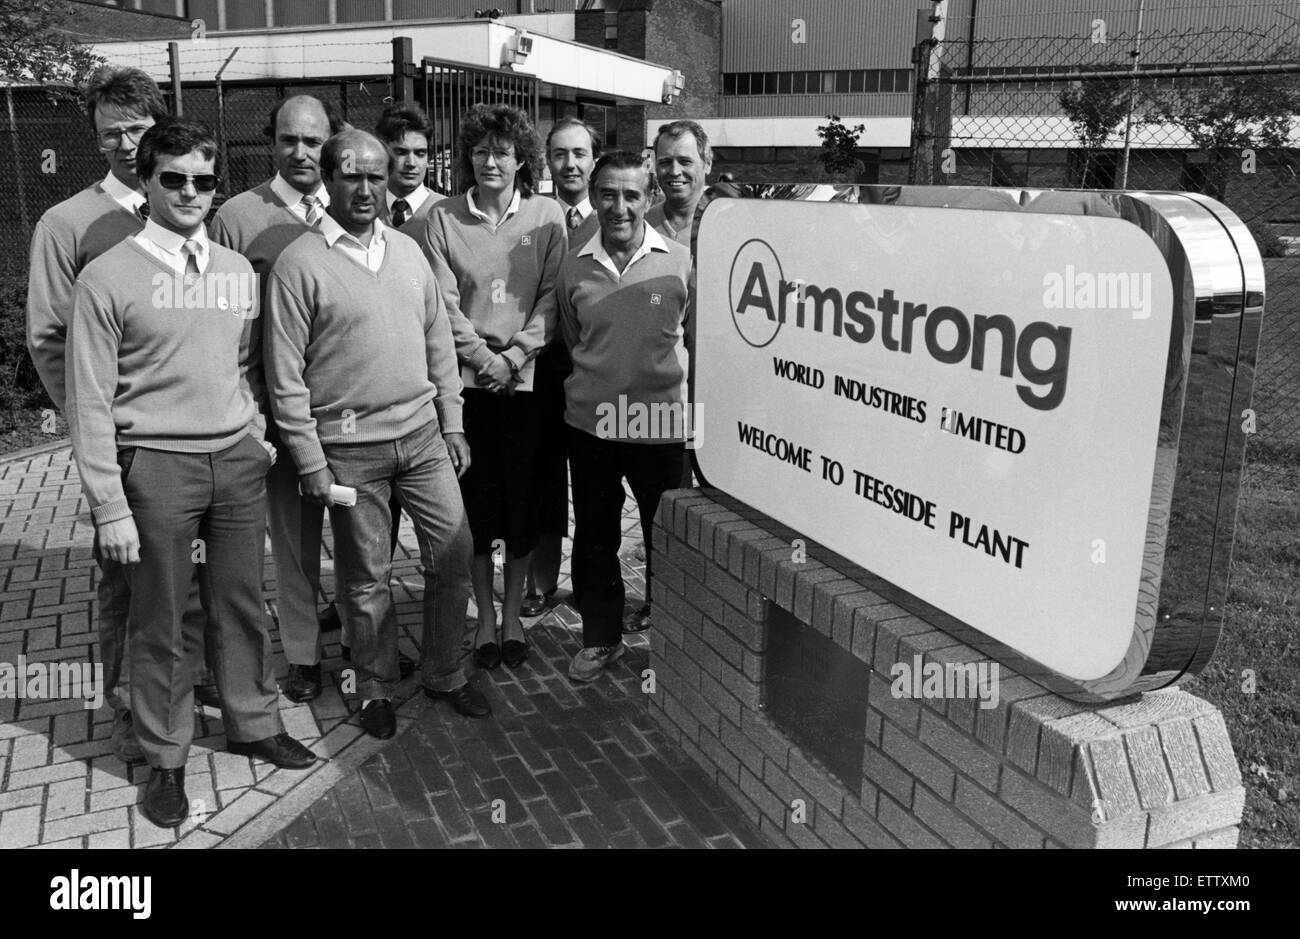 Armstrong World Industries Limited. Teesside Plant. 7th September 1987. - Stock Image